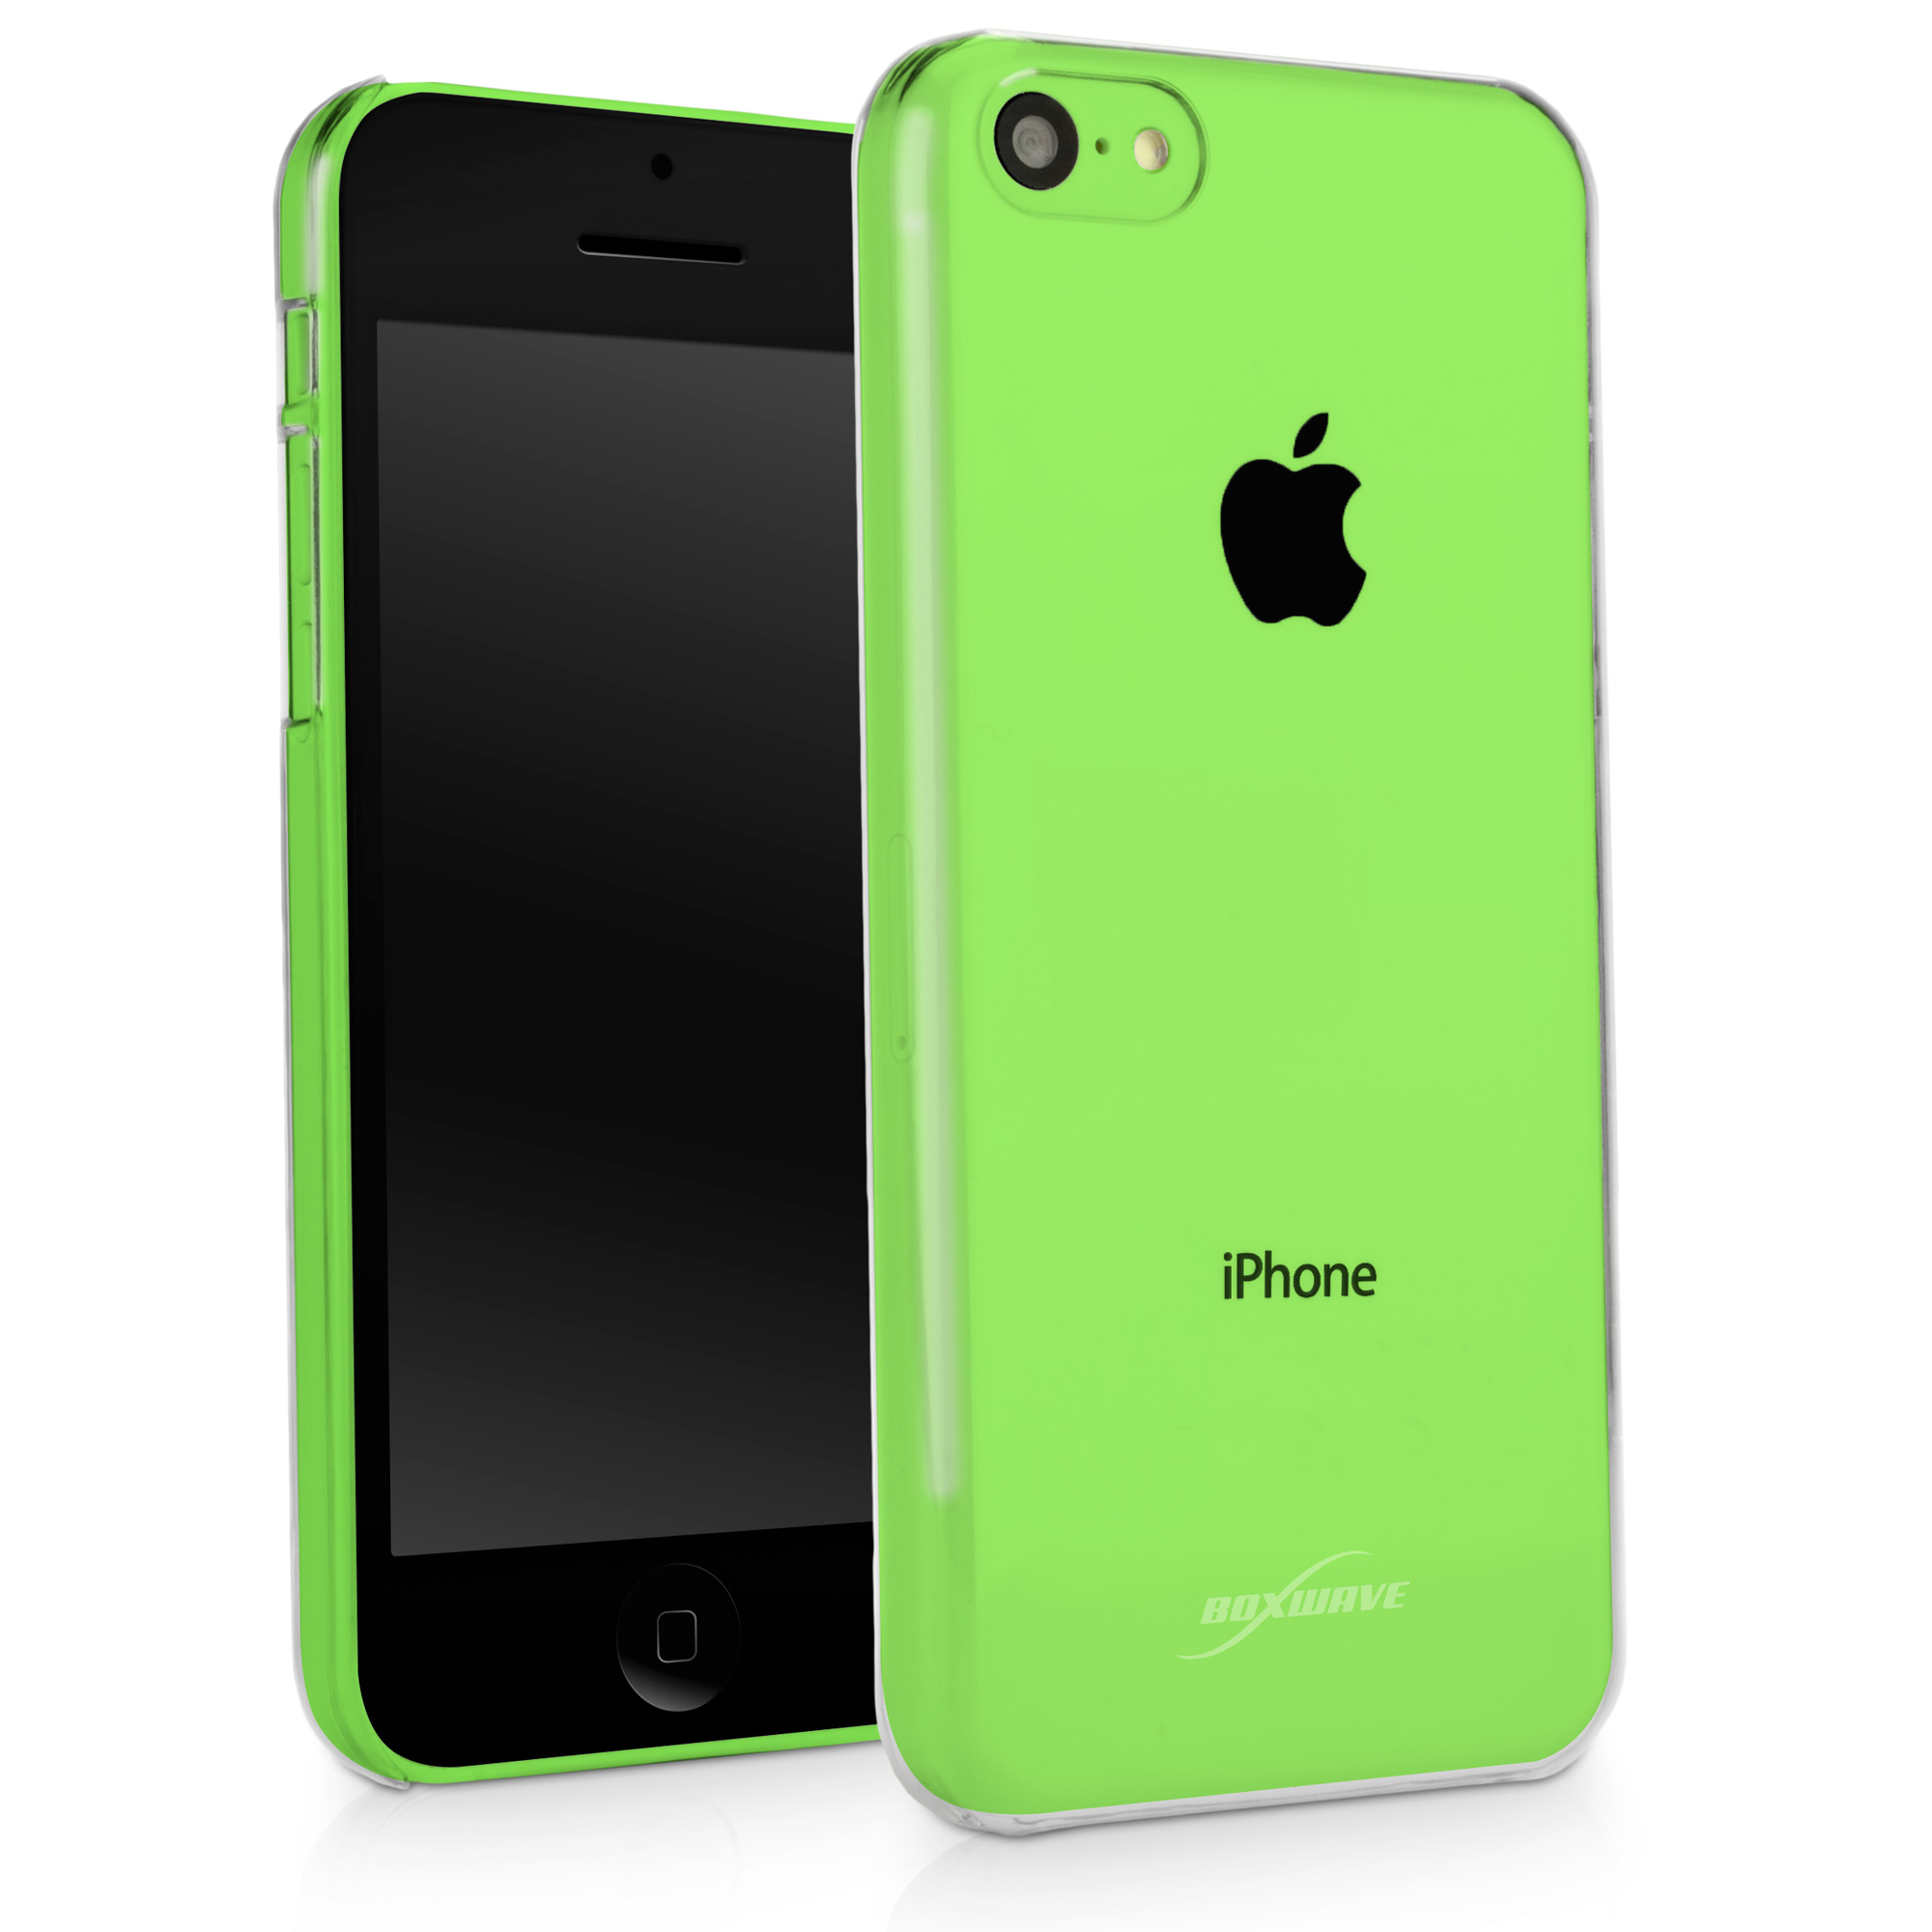 iphone 5c new boxwave 174 introduces new accessories for the apple iphone 5c 11111